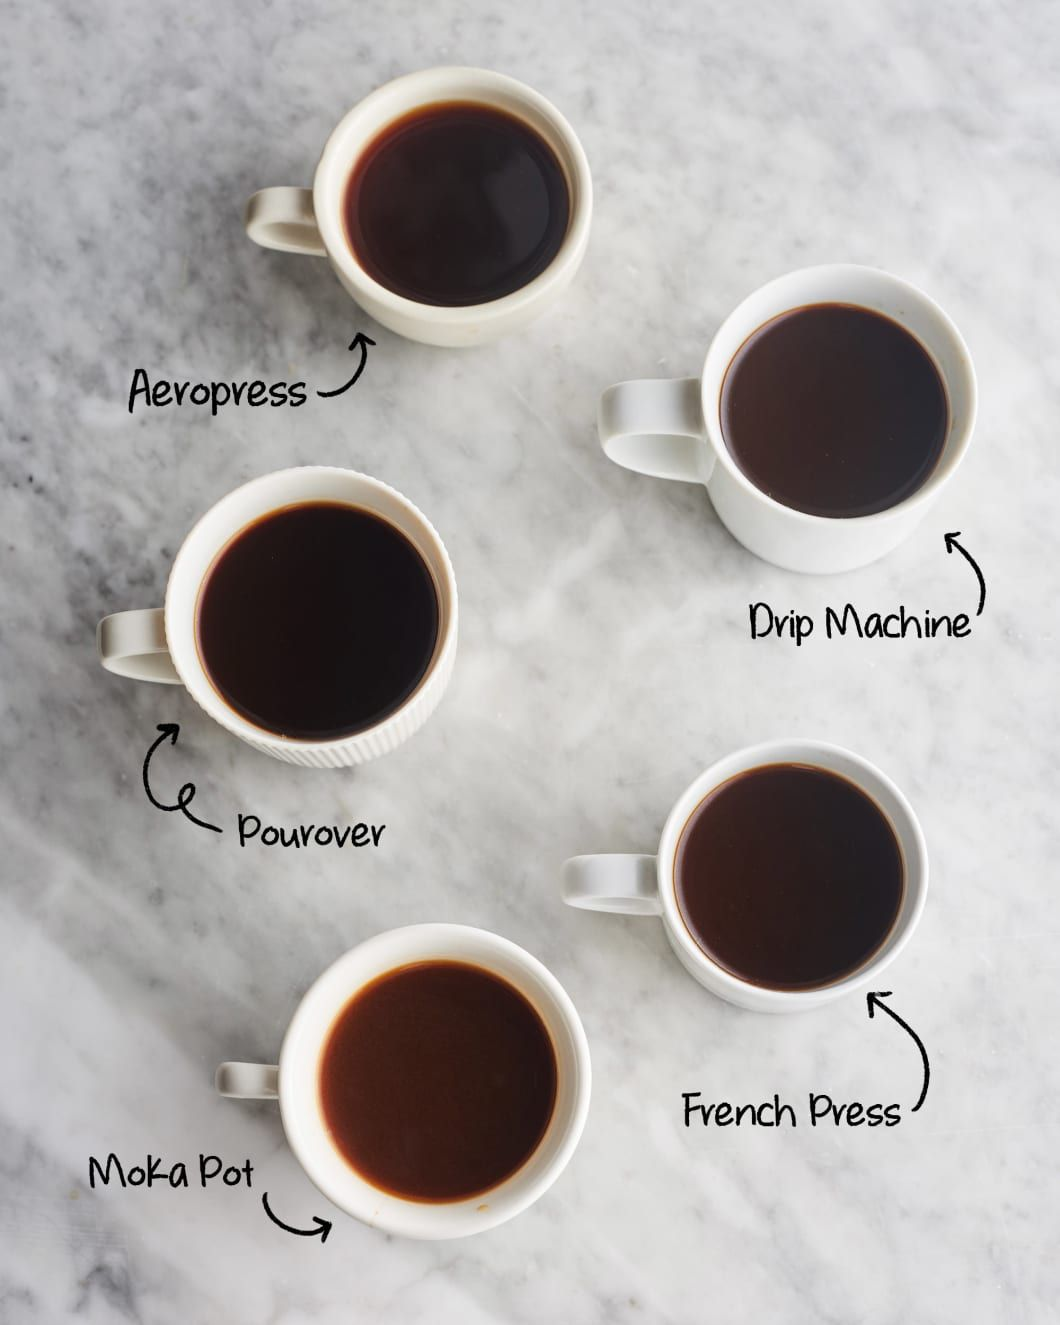 I Tried 5 Methods To Make Italian Style Coffee At Home The Winner Was Clear And Surprising In 2020 Coffee Brewing Methods Coffee Brewing Coffee And Espresso Maker